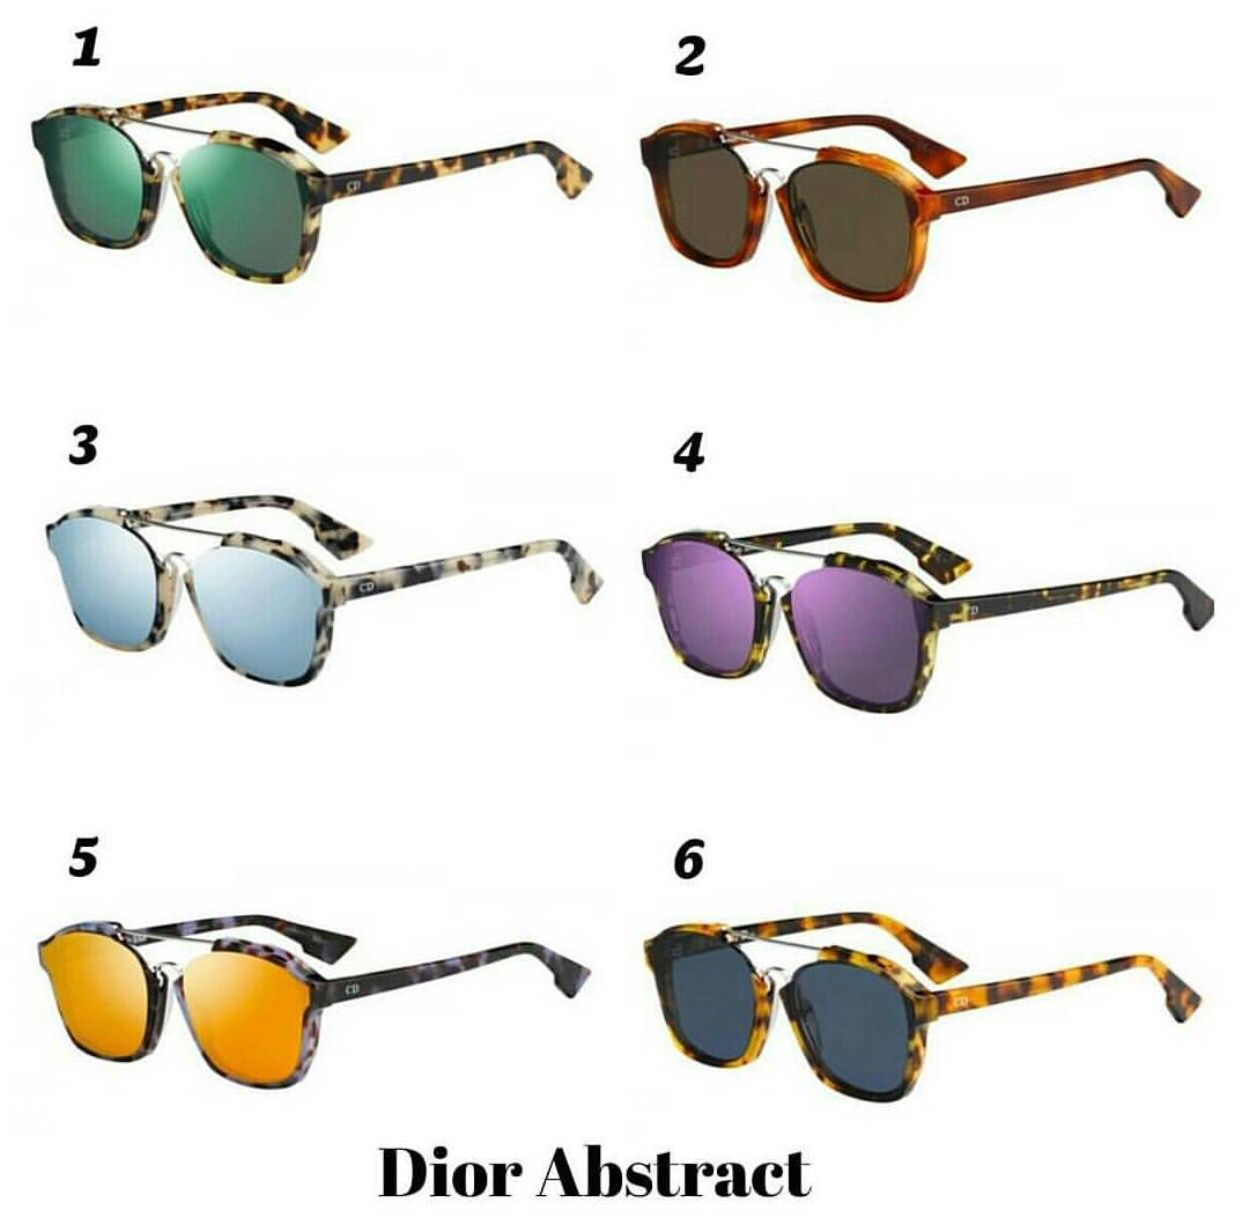 d86a0738a Dior Abstract sunglasses | Eye Gear-Shades | Dior abstract ...